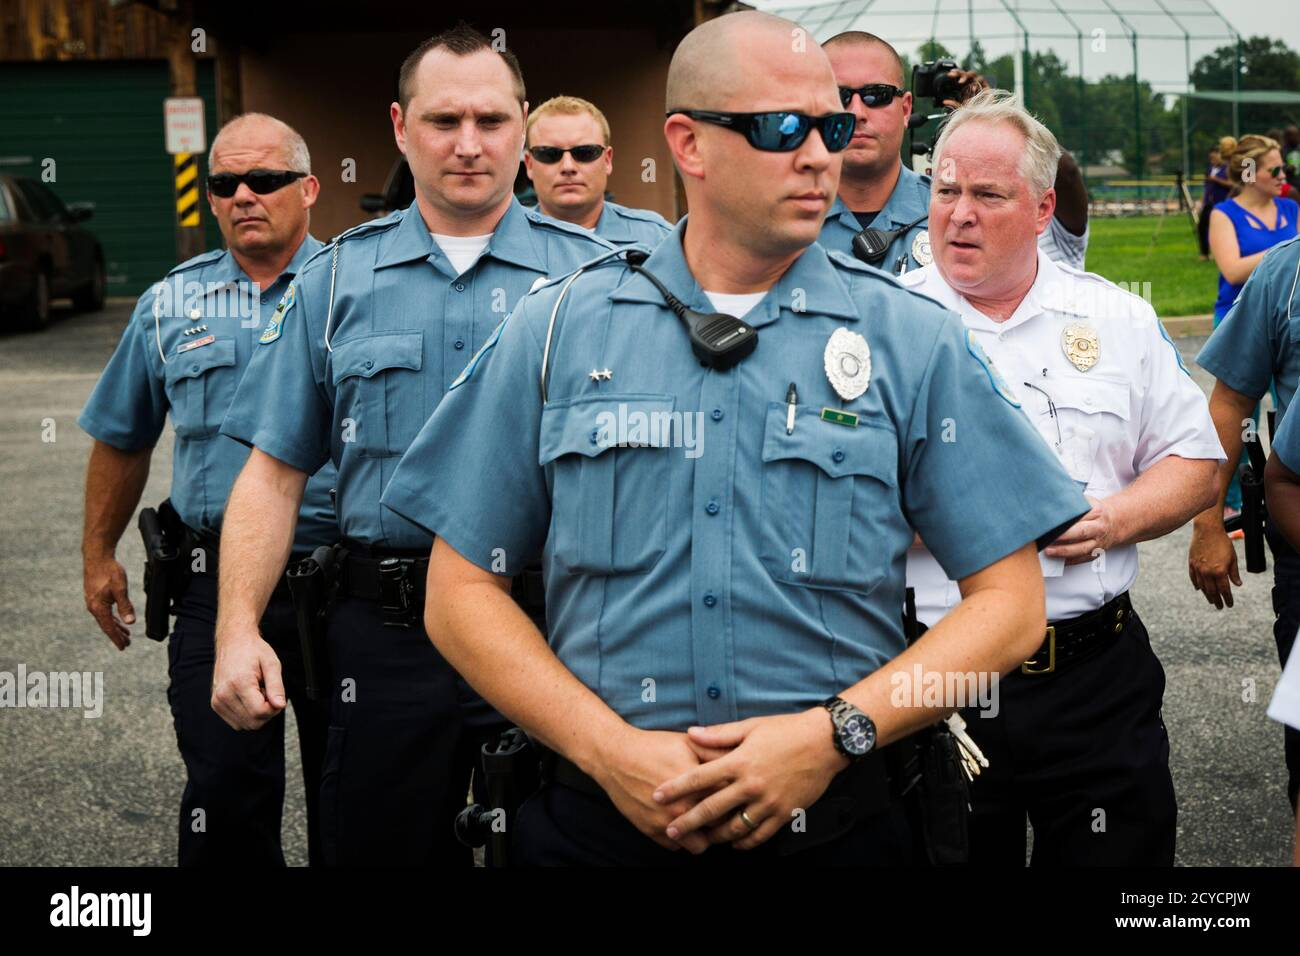 Ferguson Police Chief Thomas Jackson (R) walks away from a media availability regarding his office's handling of the release of information following the shooting of Michael Brown in Ferguson, Missouri August 15, 2014. Picture taken August 15, 2014.  REUTERS/Lucas Jackson (UNITED STATES - Tags: CIVIL UNREST CRIME LAW POLITICS) Stock Photo